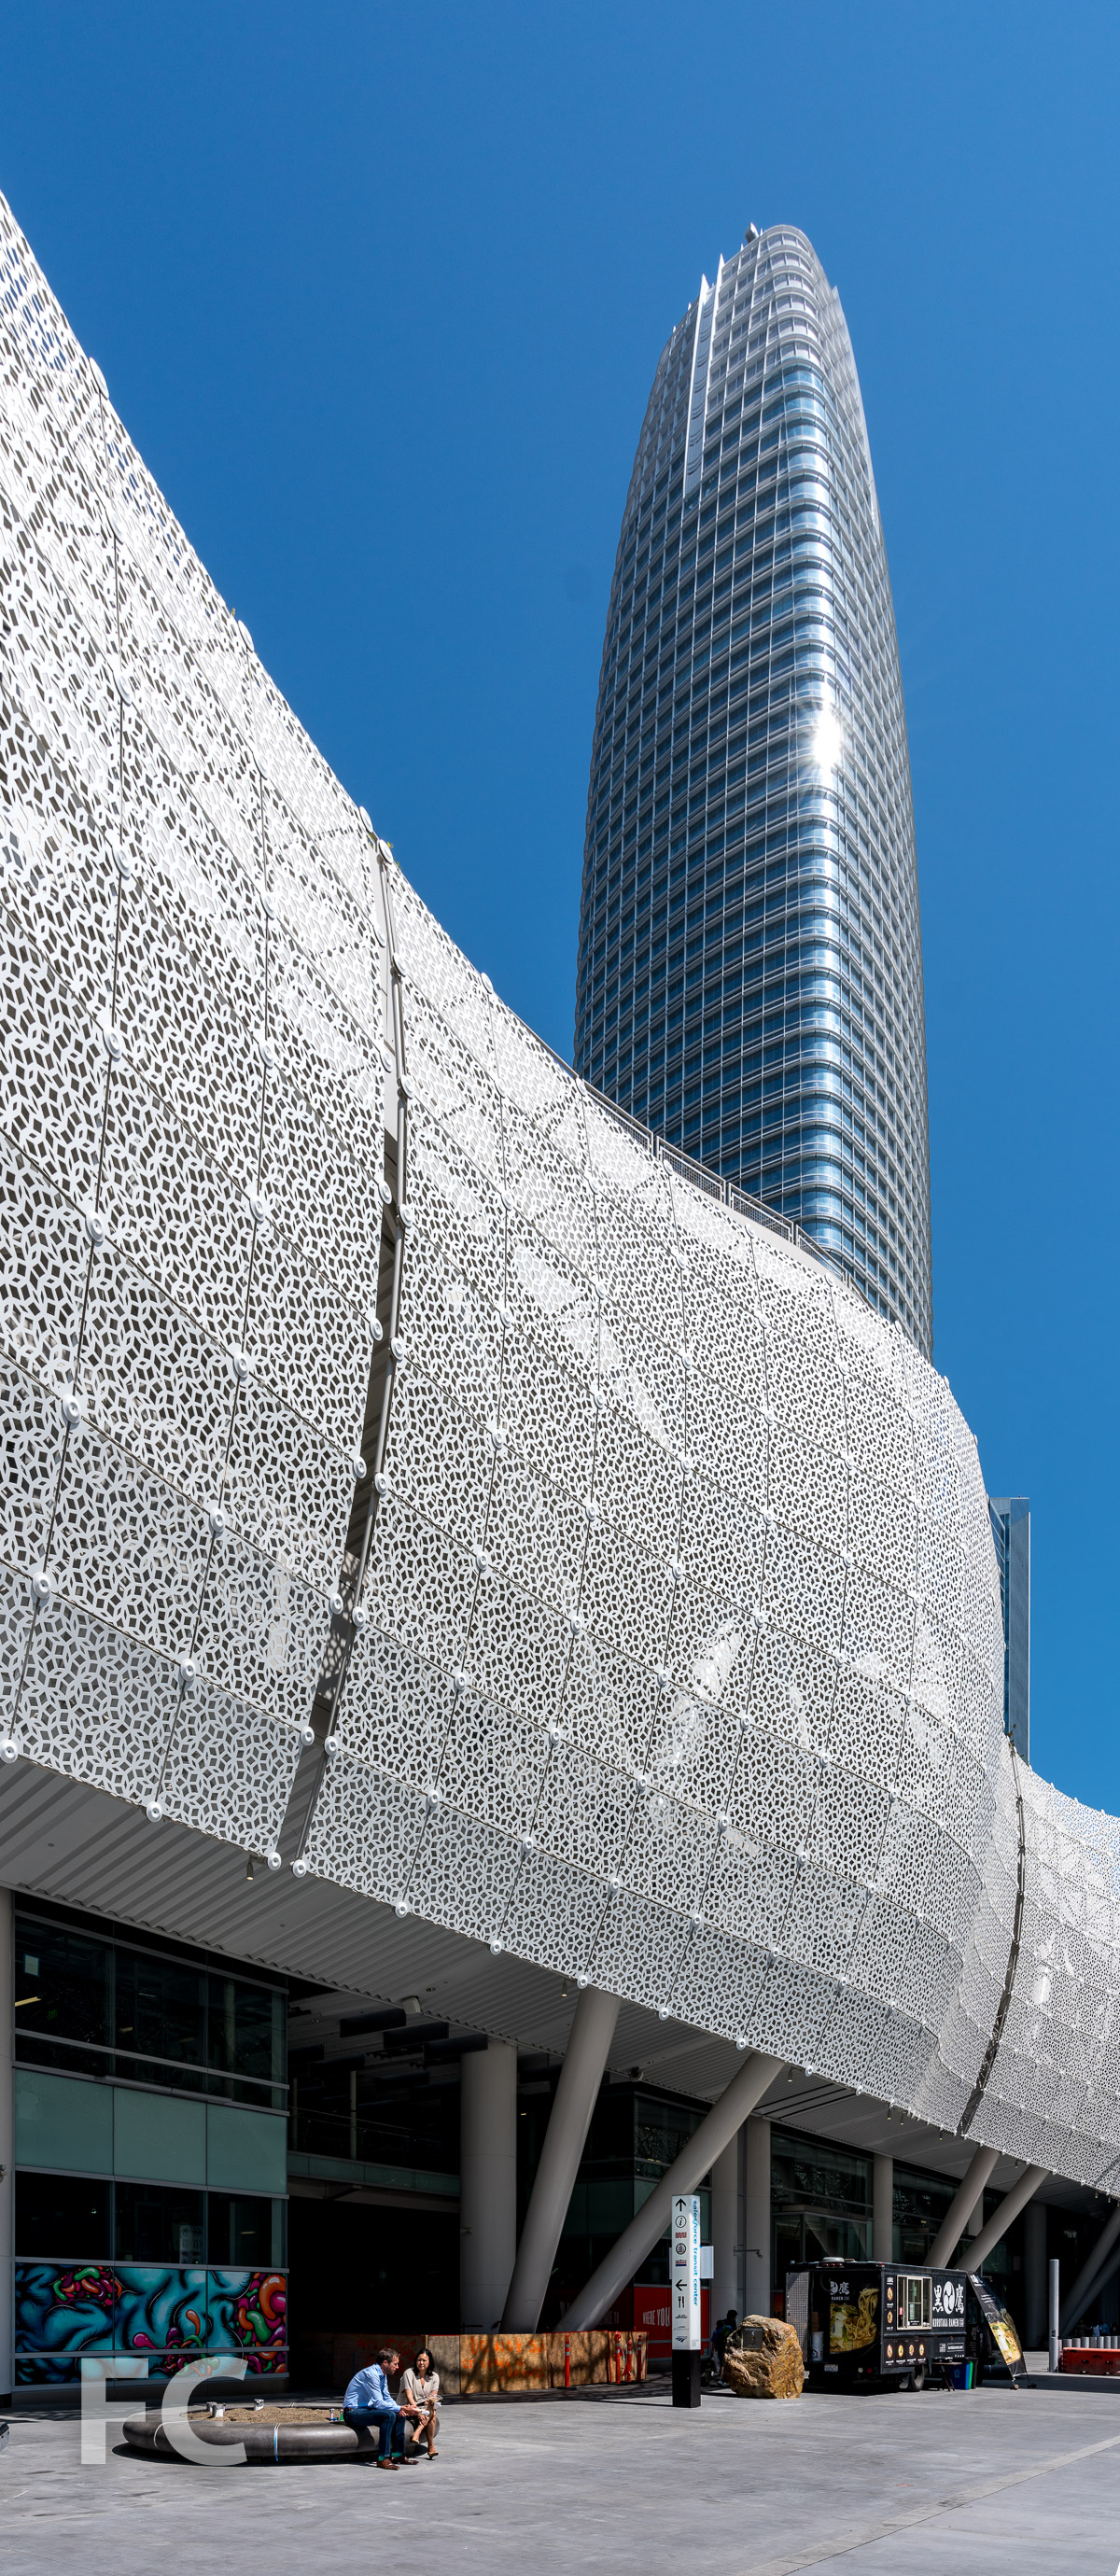 2018_08_16-Transbay Transit Center-DSC01252.jpg